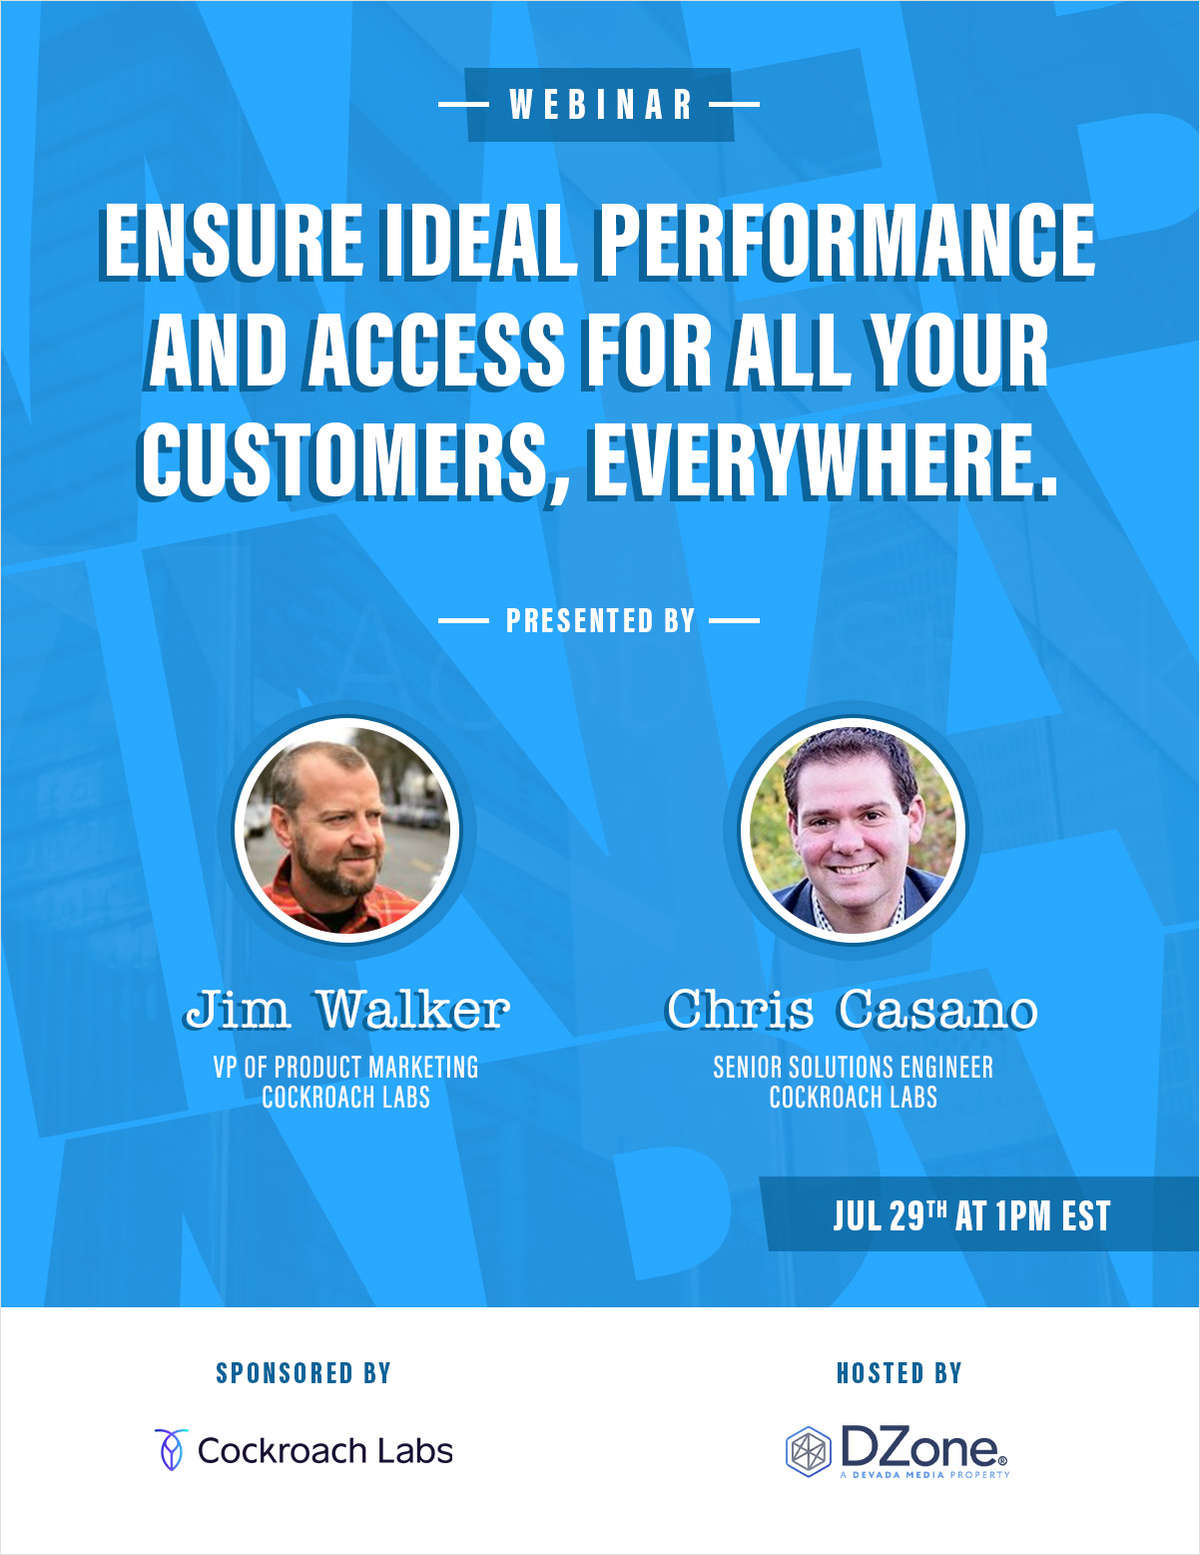 Ensure Ideal Performance and Access for All Your Customers, Everywhere